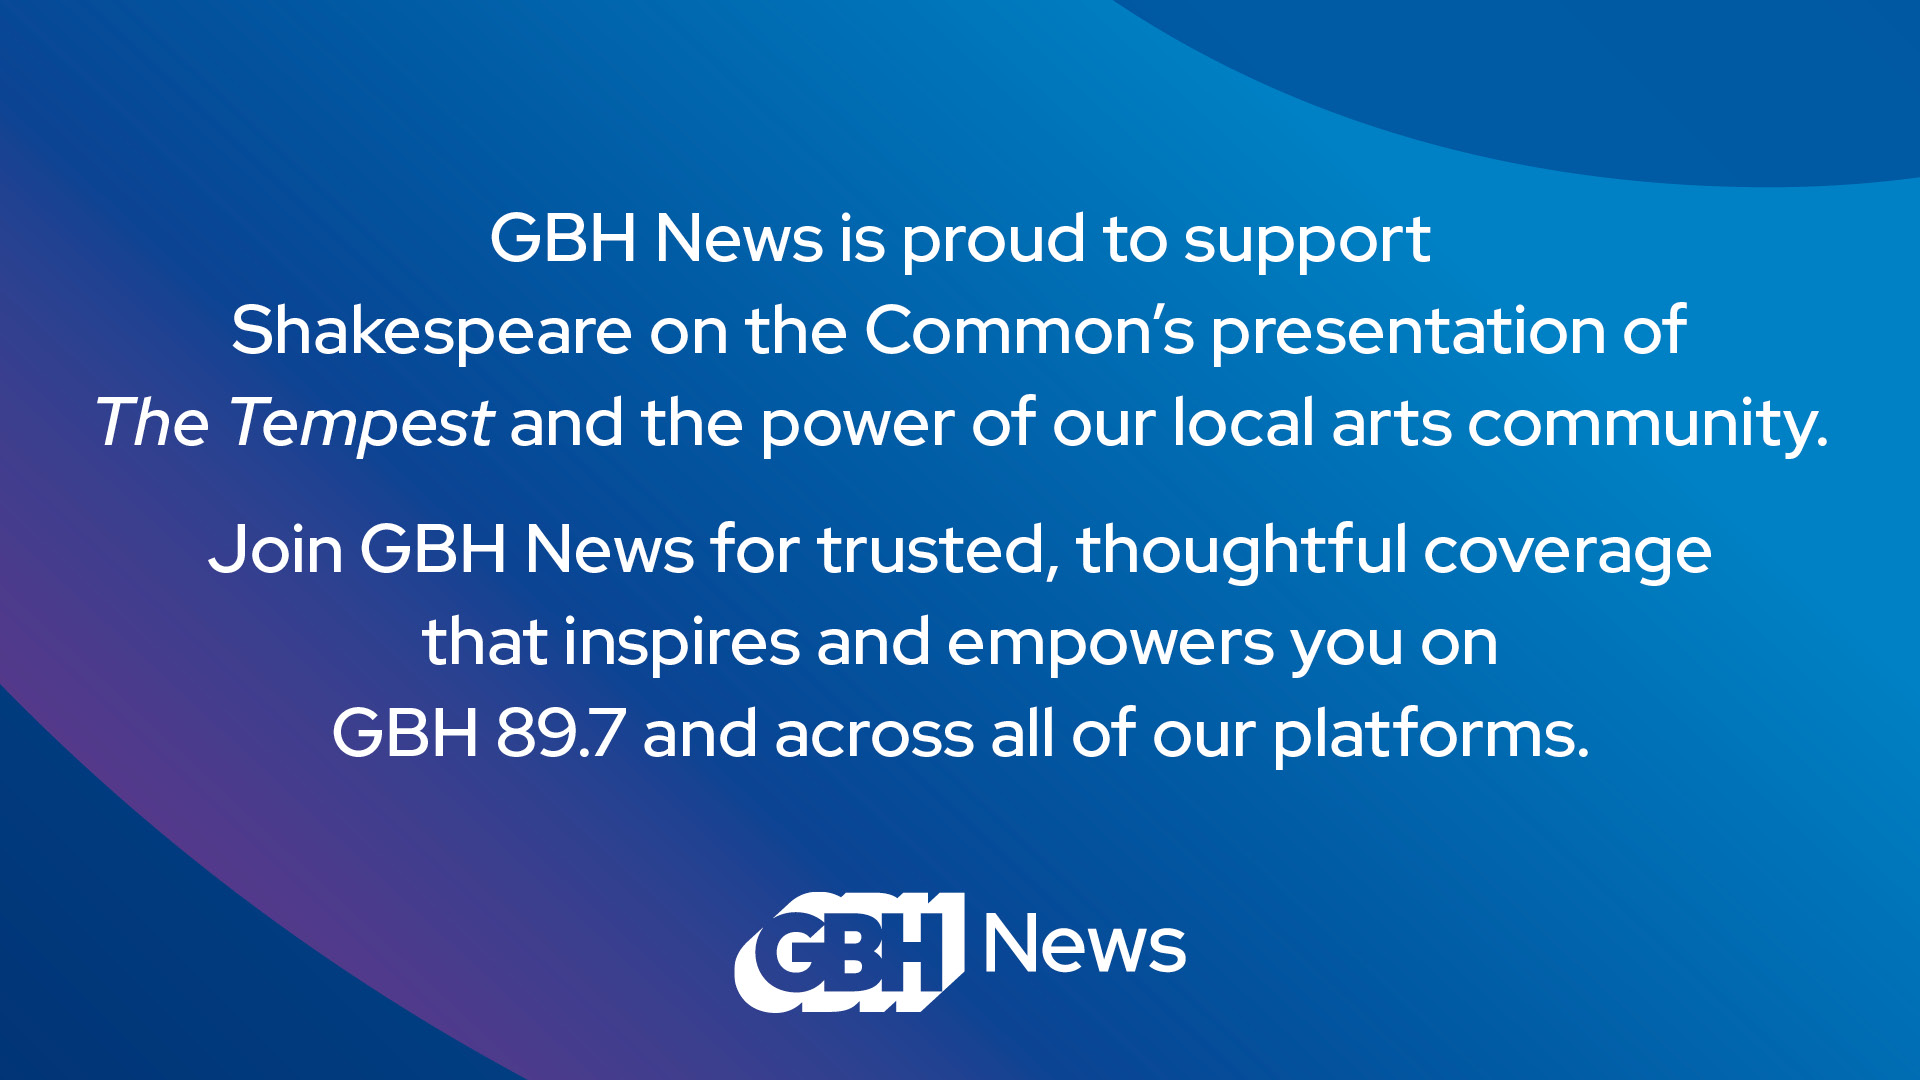 """IMAGE: blue and purple background with GBH logo and text that says """"GBH News is proud to support Shakespeare on the Common's presentation of The Tempest and the power of our local arts community. Join GBH News for trusted, thoughtful coverage that inspires and empowers you on GBH 89.7 and across all of our platforms."""